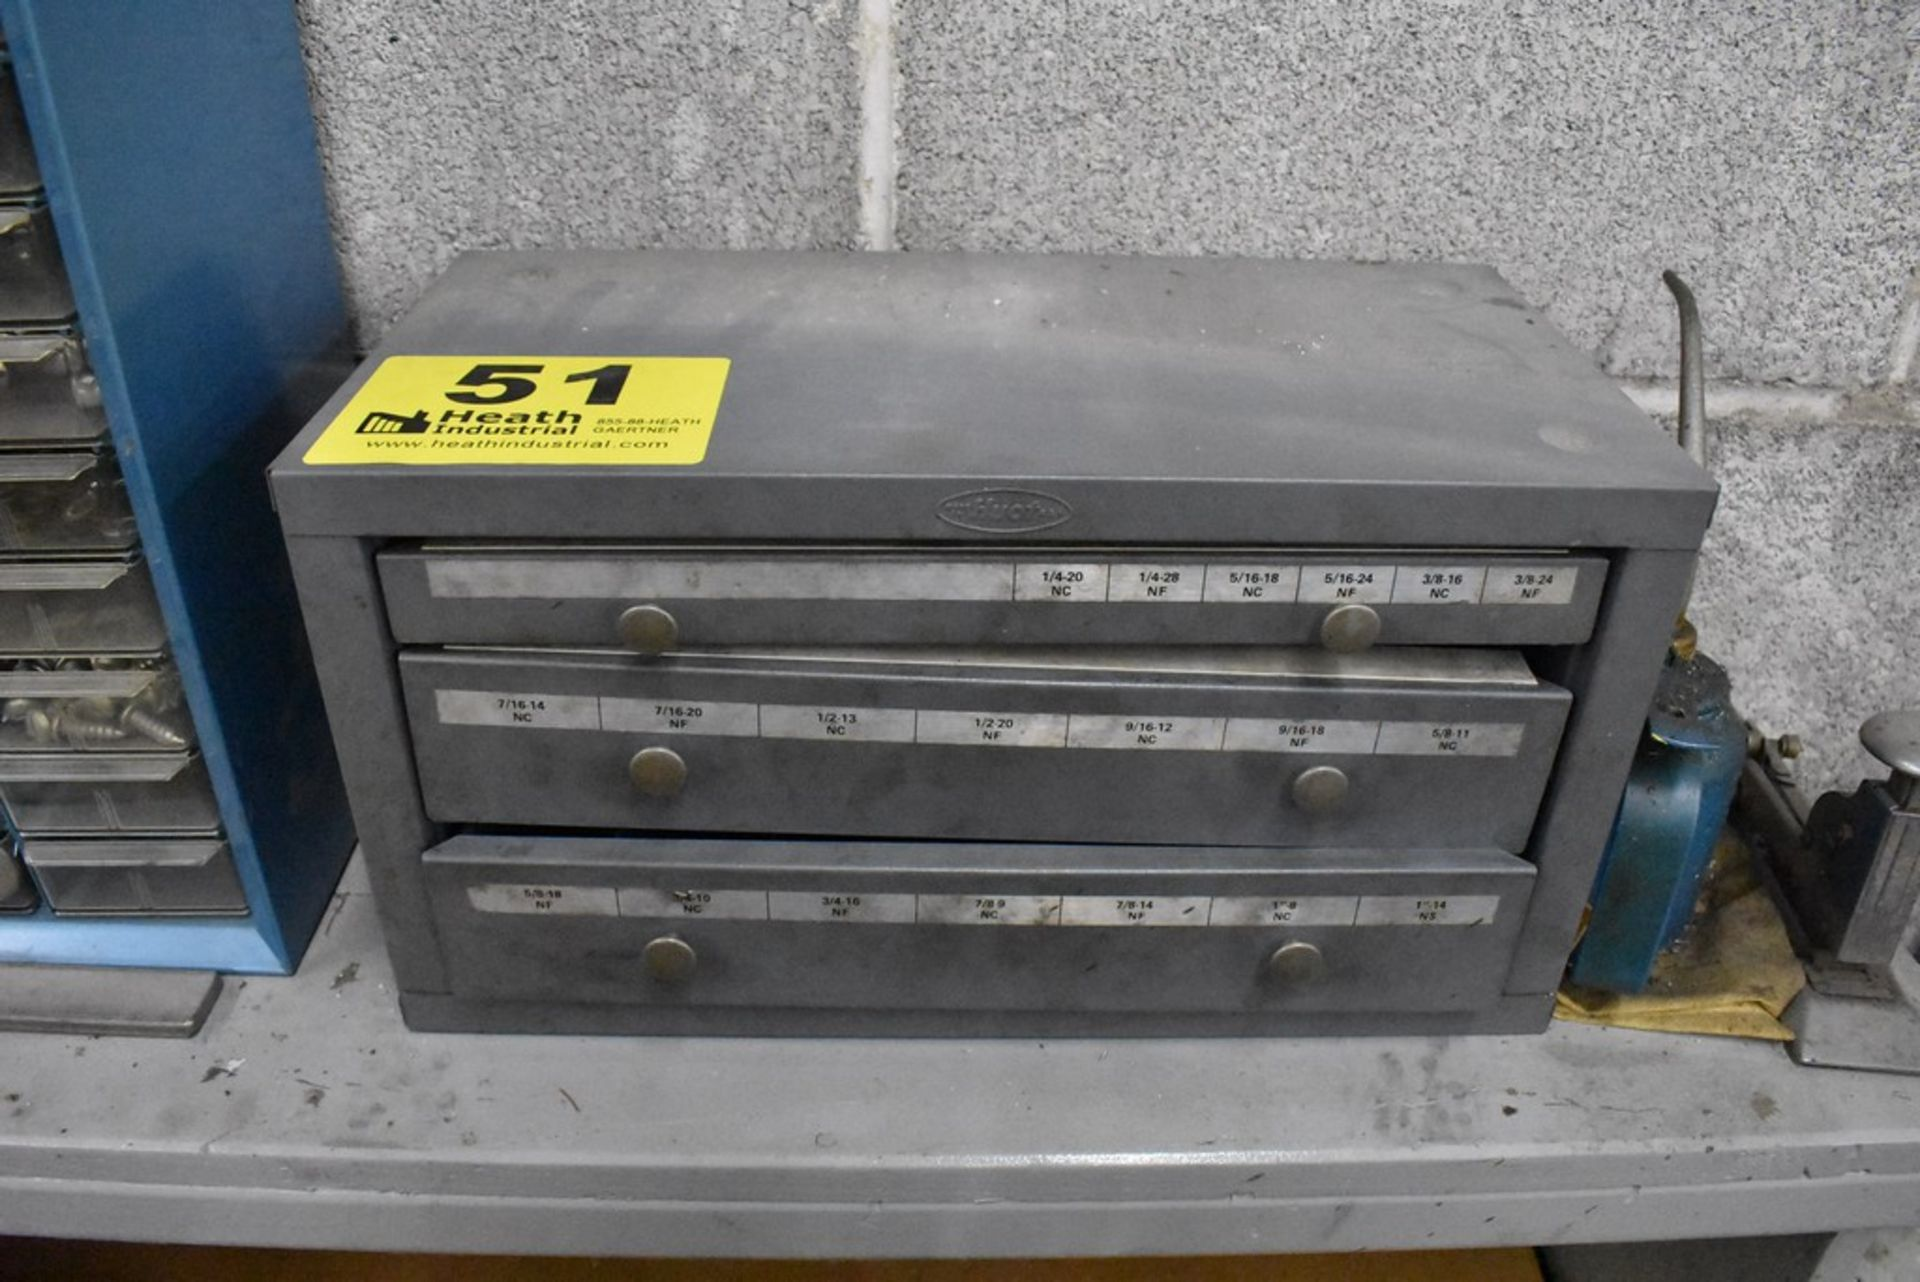 HUOT THREE DRAWER FRACTIONAL TAP CABINET WITH TAPS - Image 2 of 2